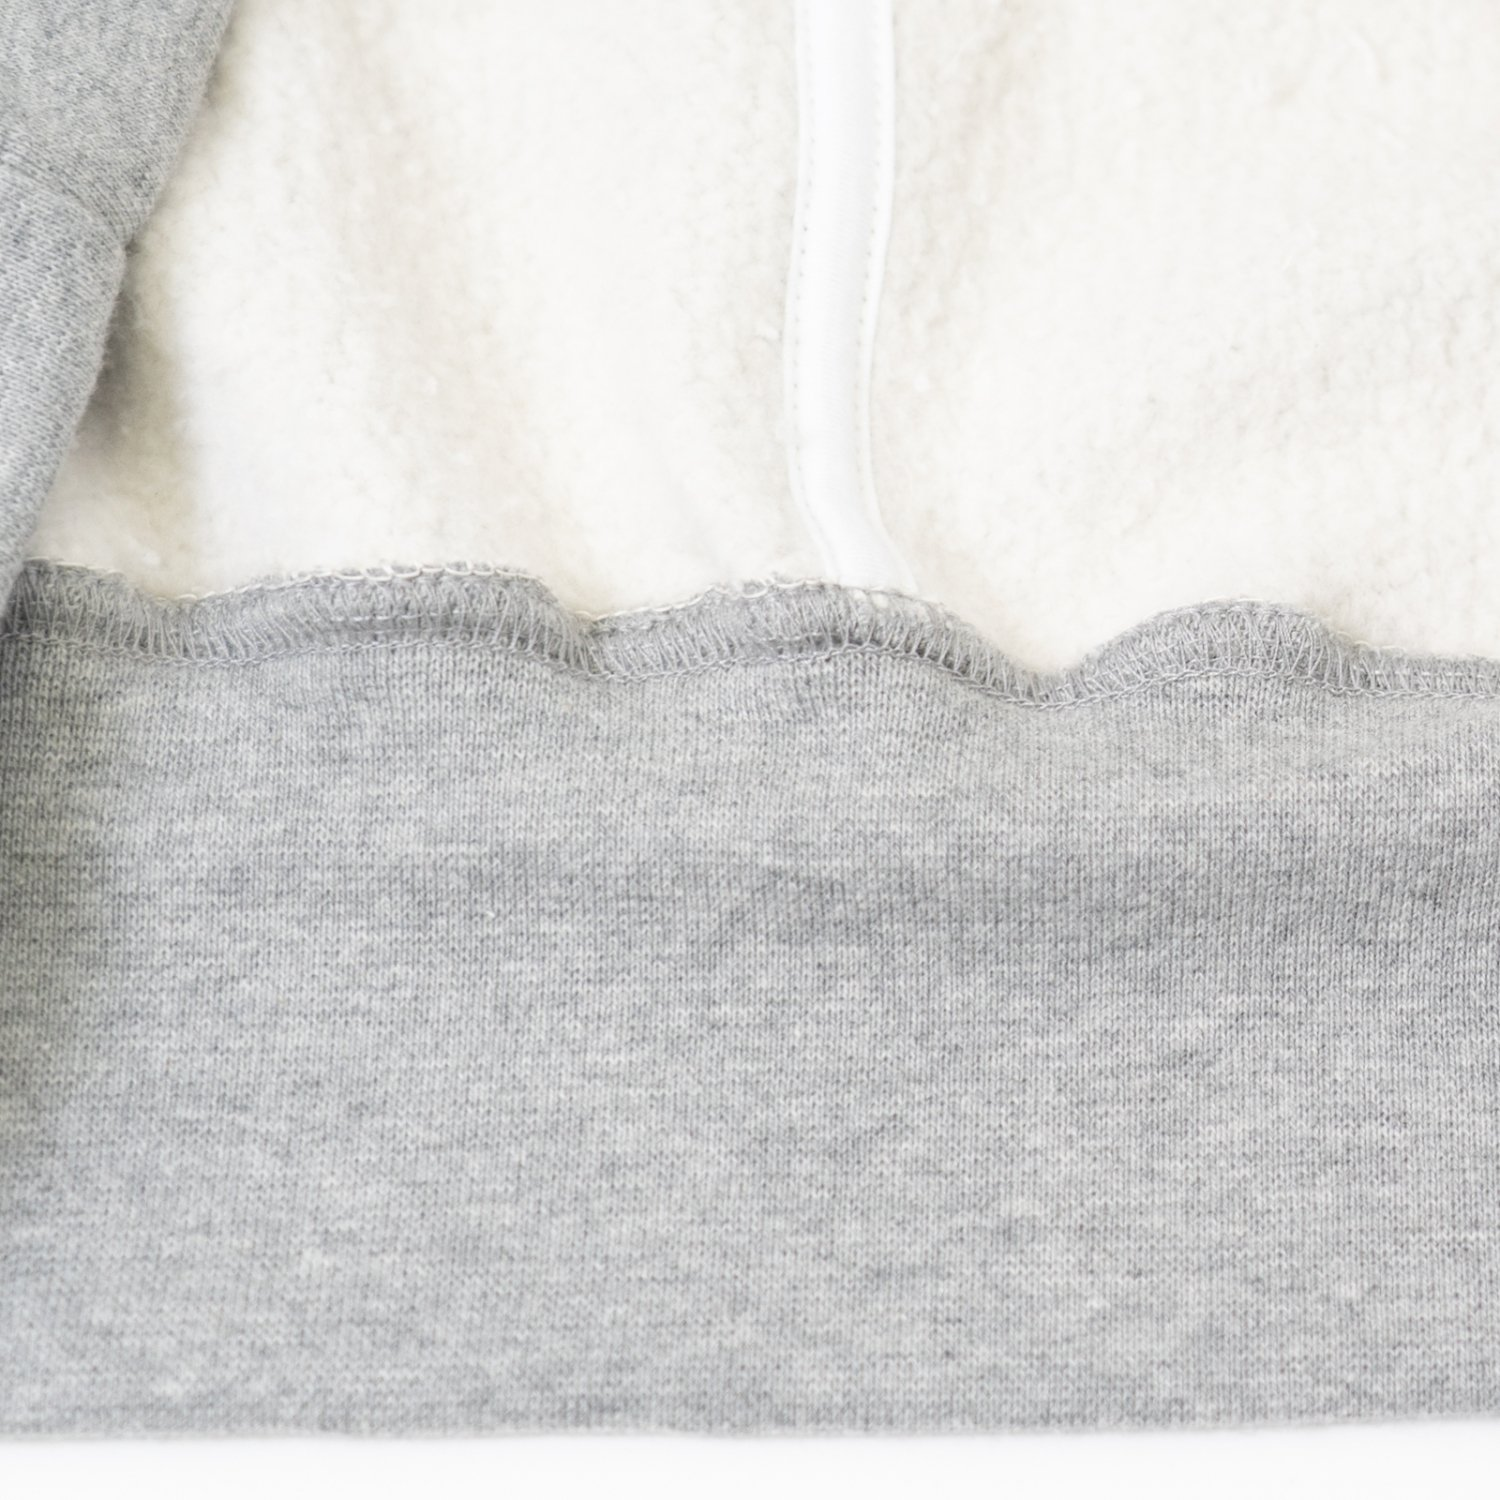 BTFL * Center Seam Hoodie * Heather Gray